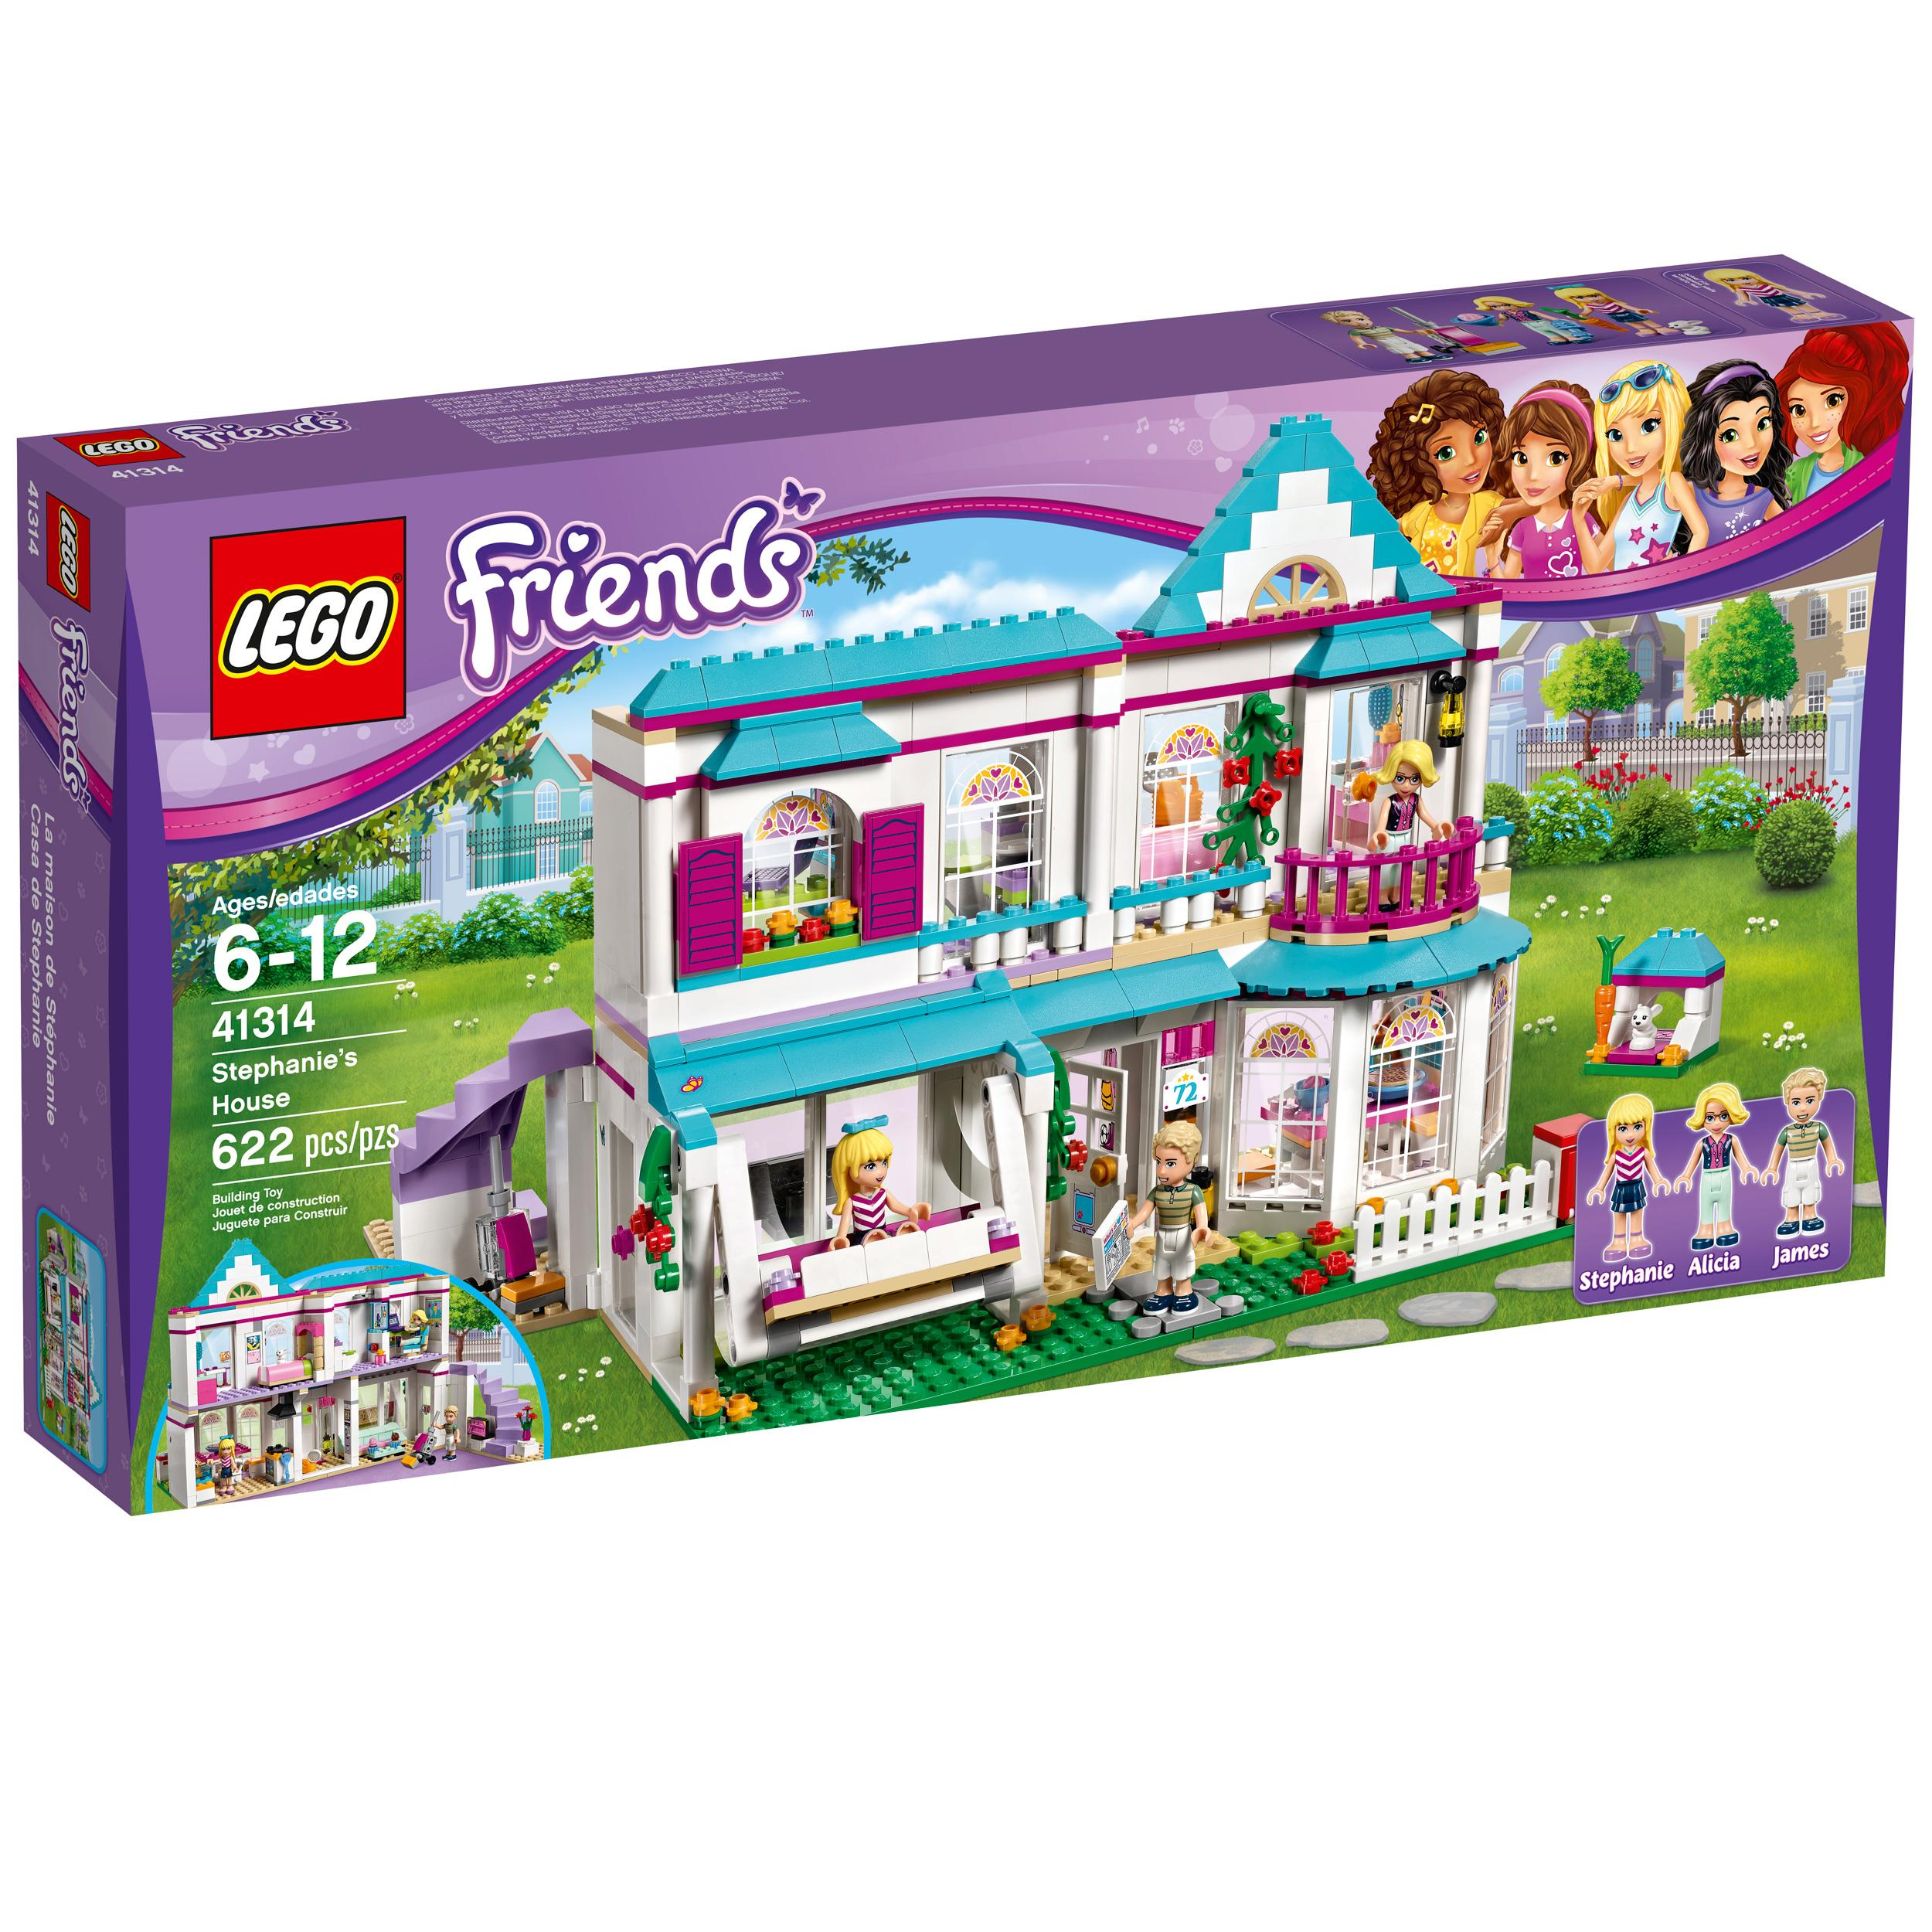 Toys For Ages 8 10 : Amazon lego friends stephanie s house toy for